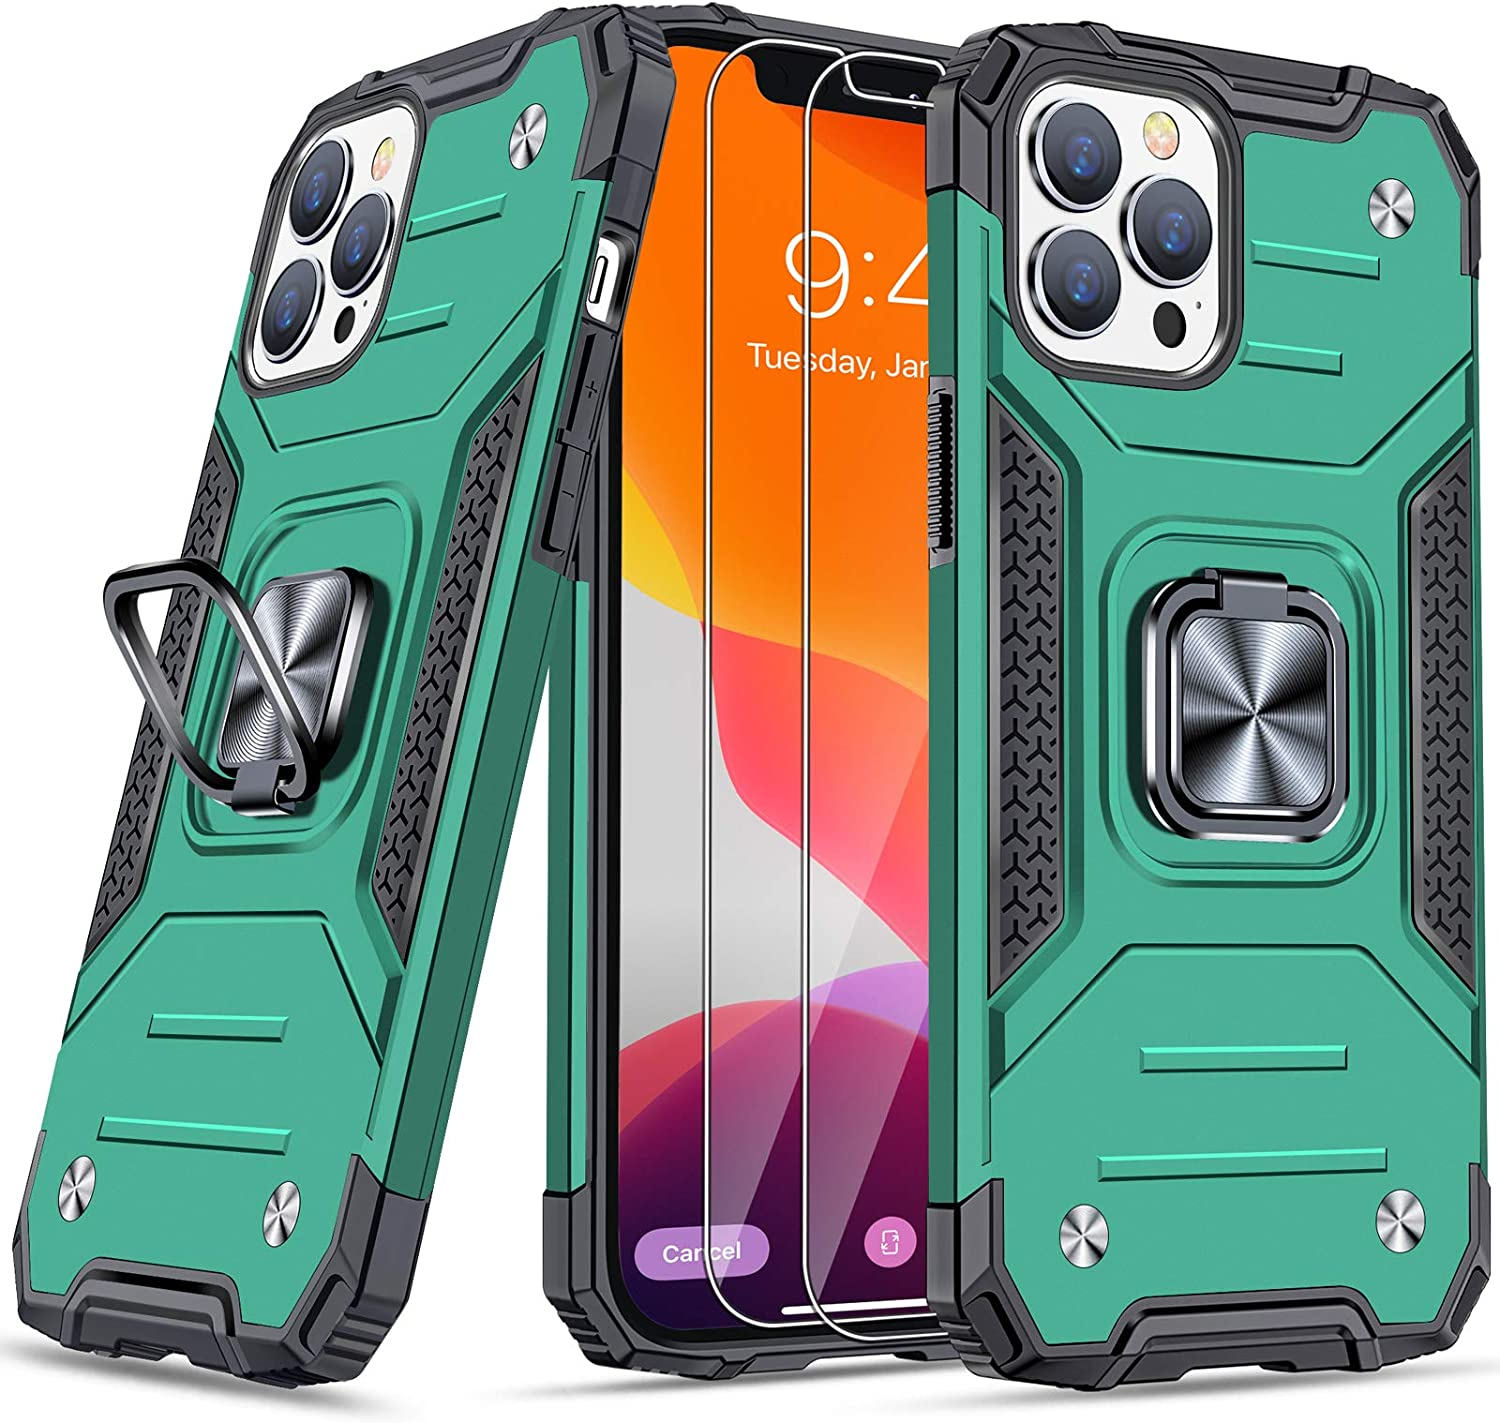 """JAME for iPhone 12 Pro Max Phone Case with [Tempered-Glass Screen Protector 2Pcs], Military-Grade Drop Protection, with Ring Kickstand, Shockproof Bumper Case for iPhone 12 Pro Max 6.7"""" Green"""